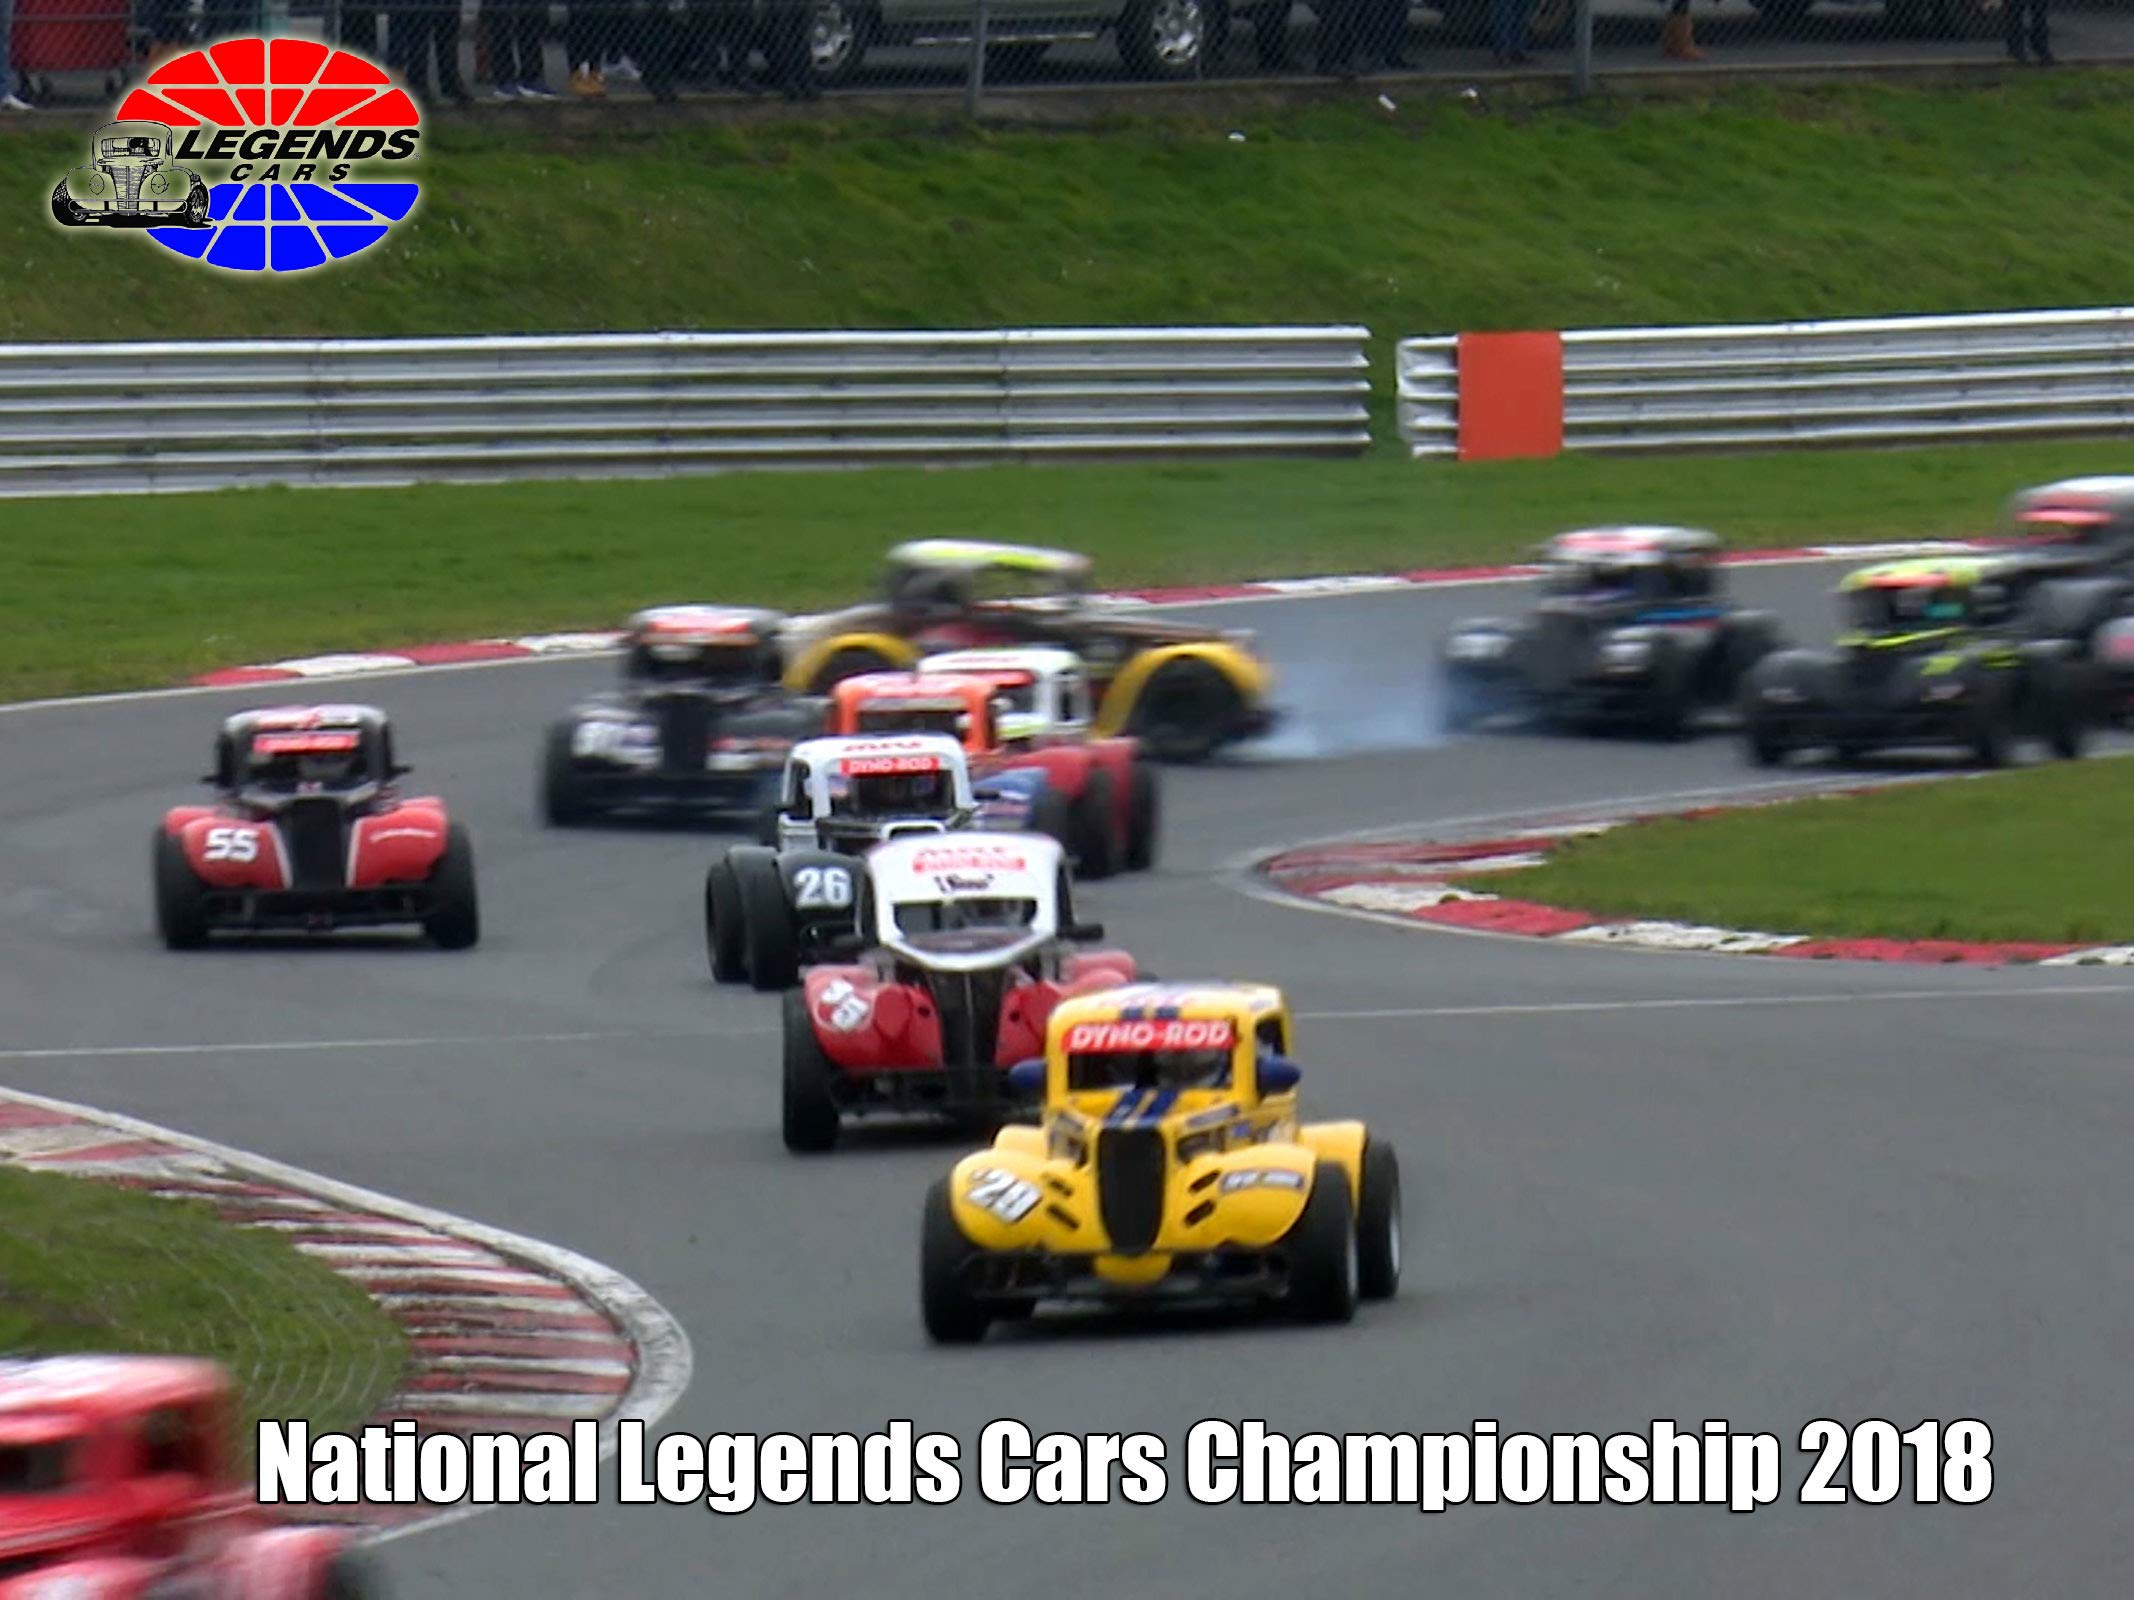 National Legends Cars Championship - Season 1